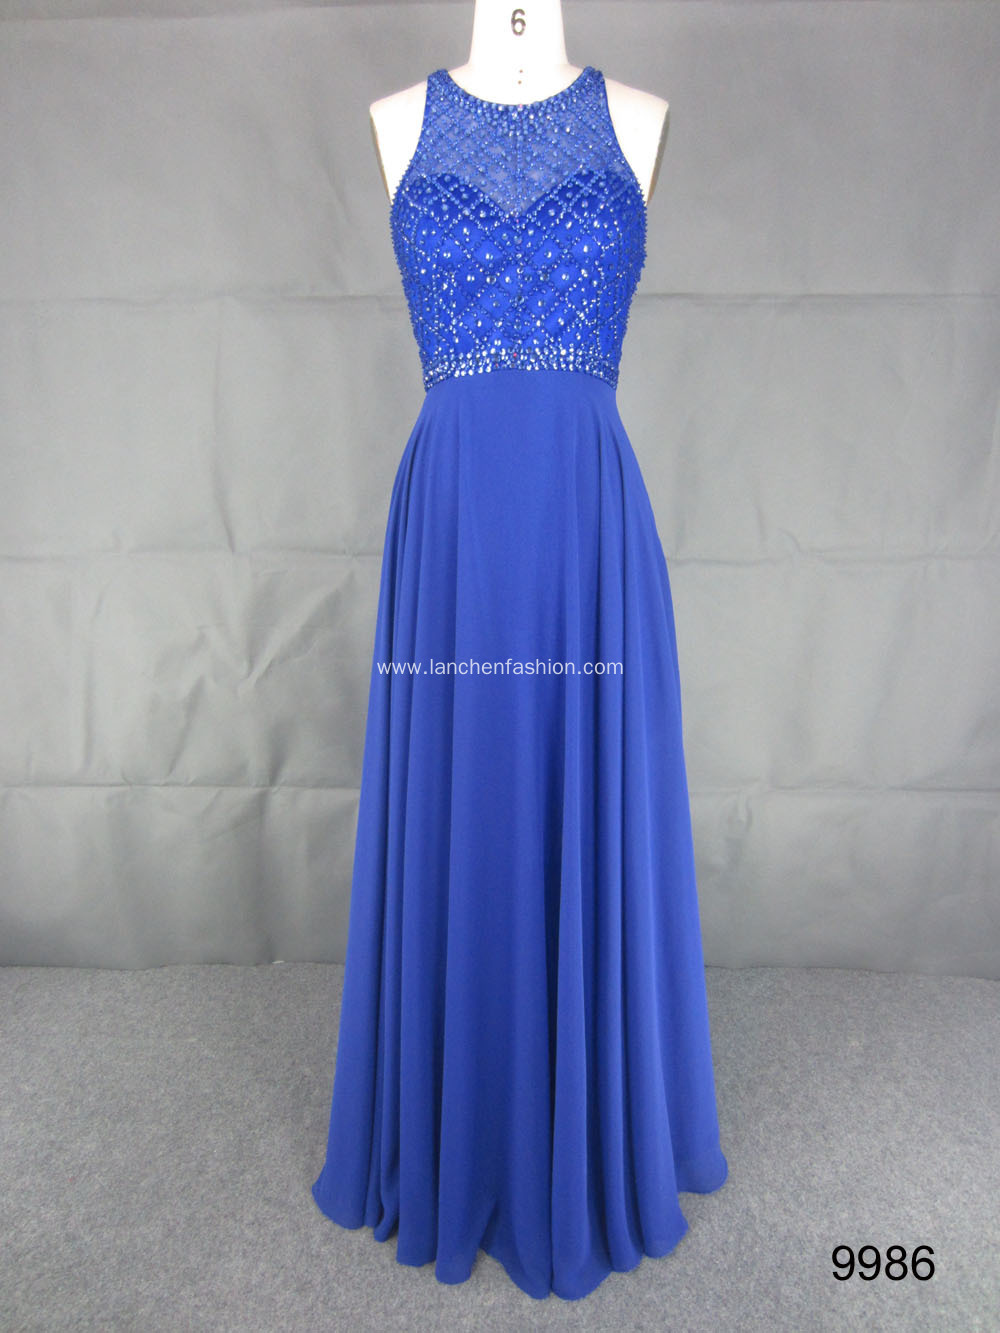 Long Halter Neck Beaded Evening Gown